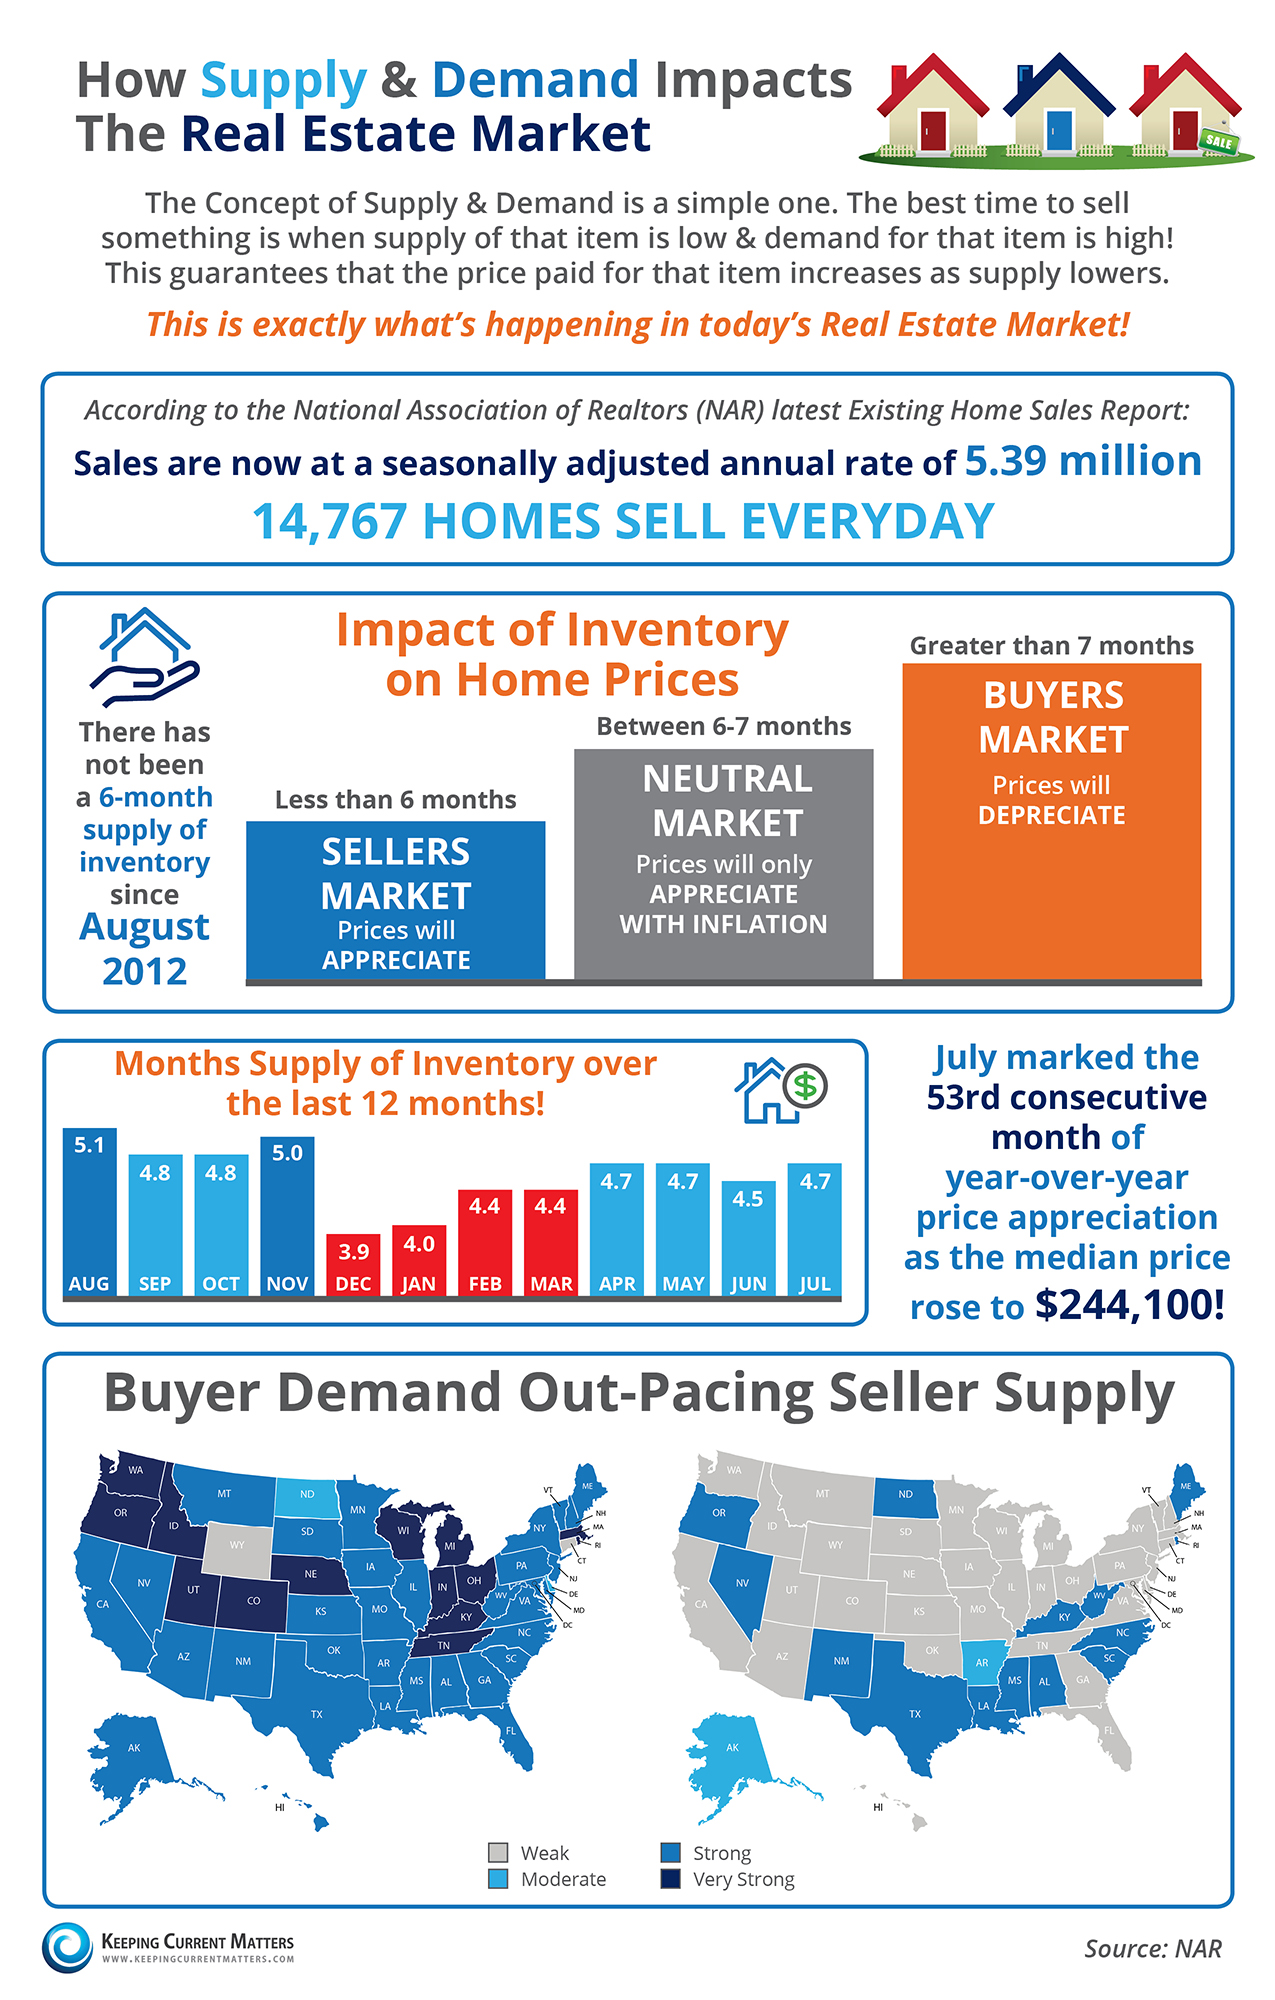 How Supply & Demand Impacts the Real Estate Market [INFOGRAPHIC] | Keeping Current Matters